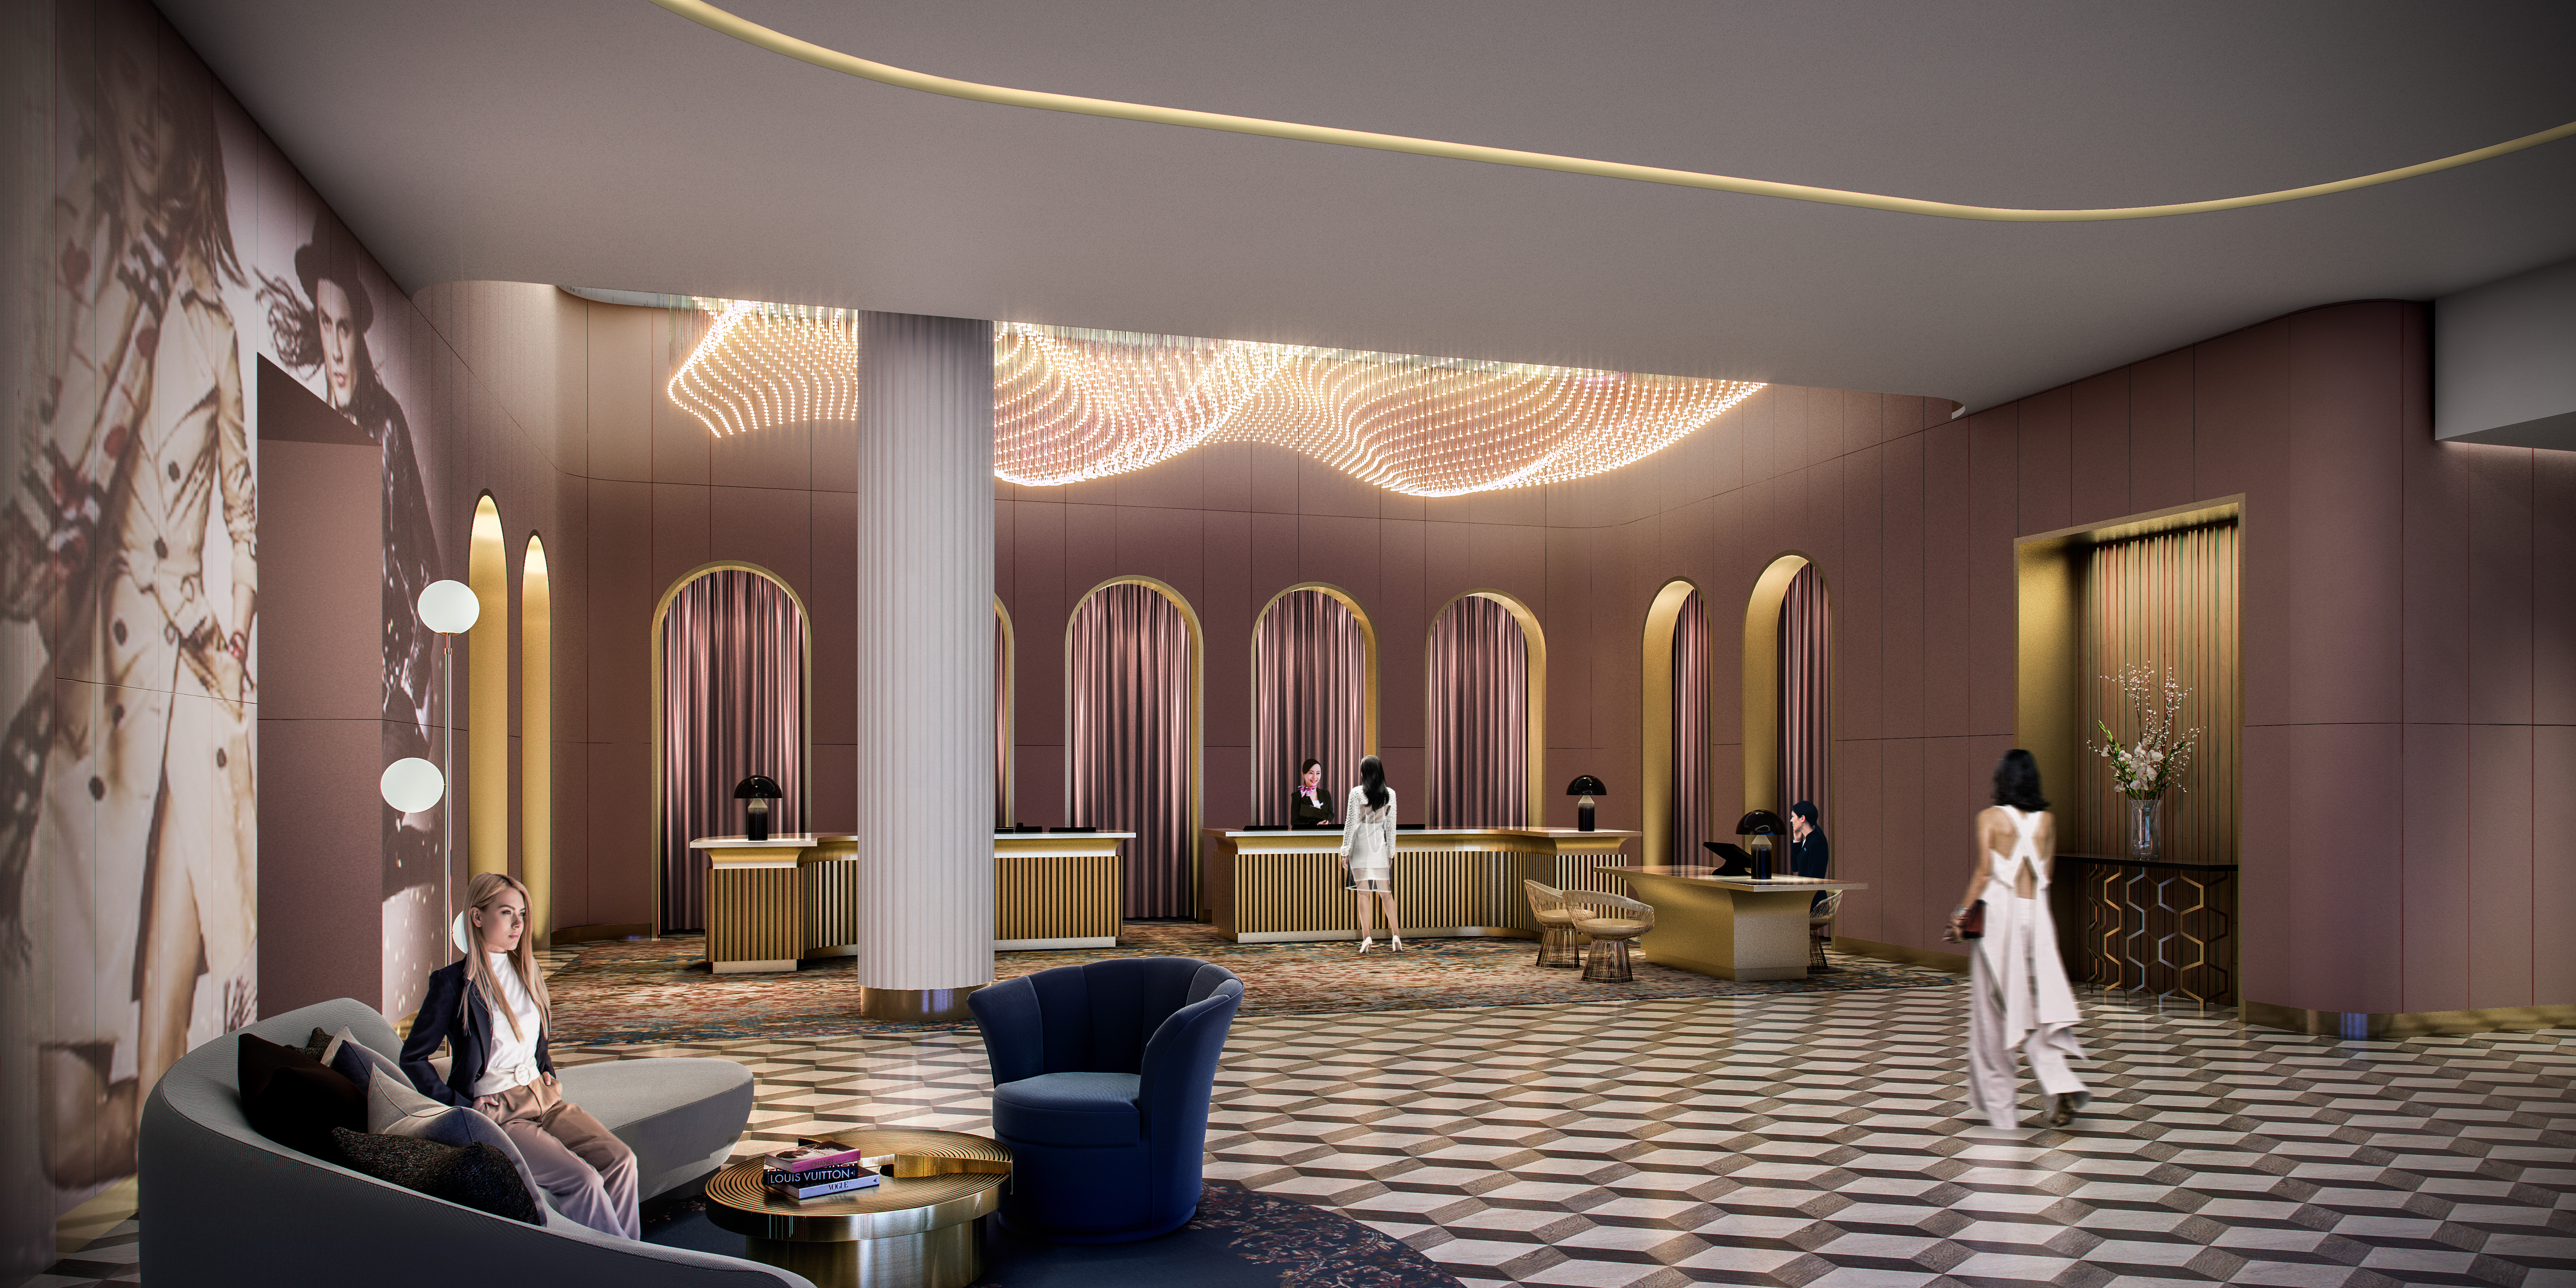 Hotel Chadstone Melbourne - MGallery by Sofitel (Opening November 2019) | 1341 Dandenong Road, Chadstone, Victoria 3148 | +61 3 9567 1073